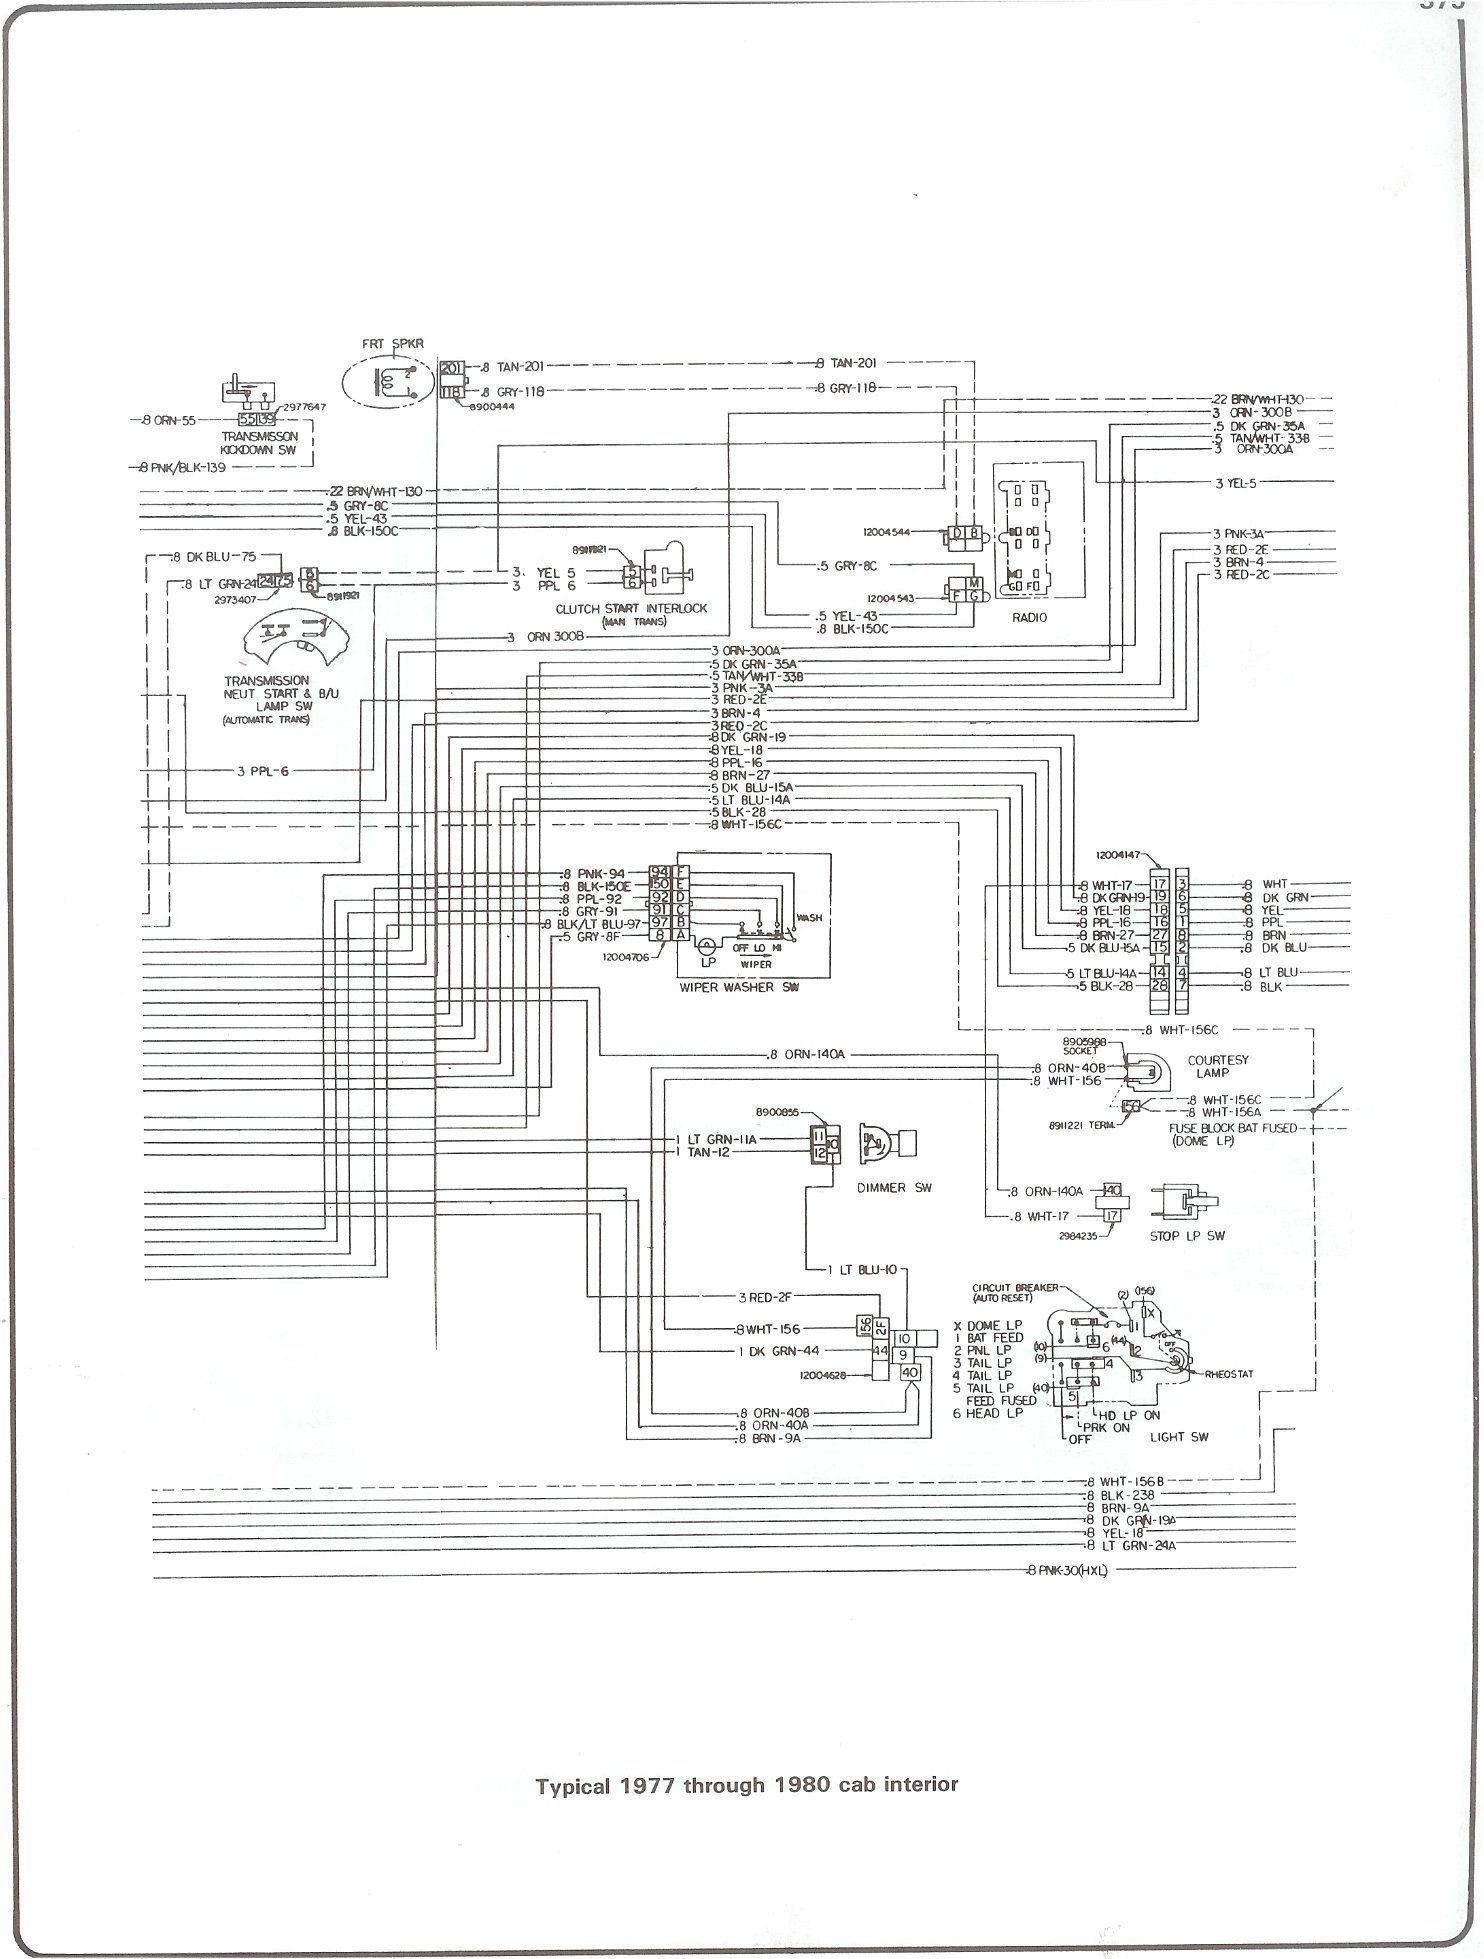 Complete 73 87 Wiring Diagrams 1960 Chevy Ignition Diagram 77 80 Cab Interior